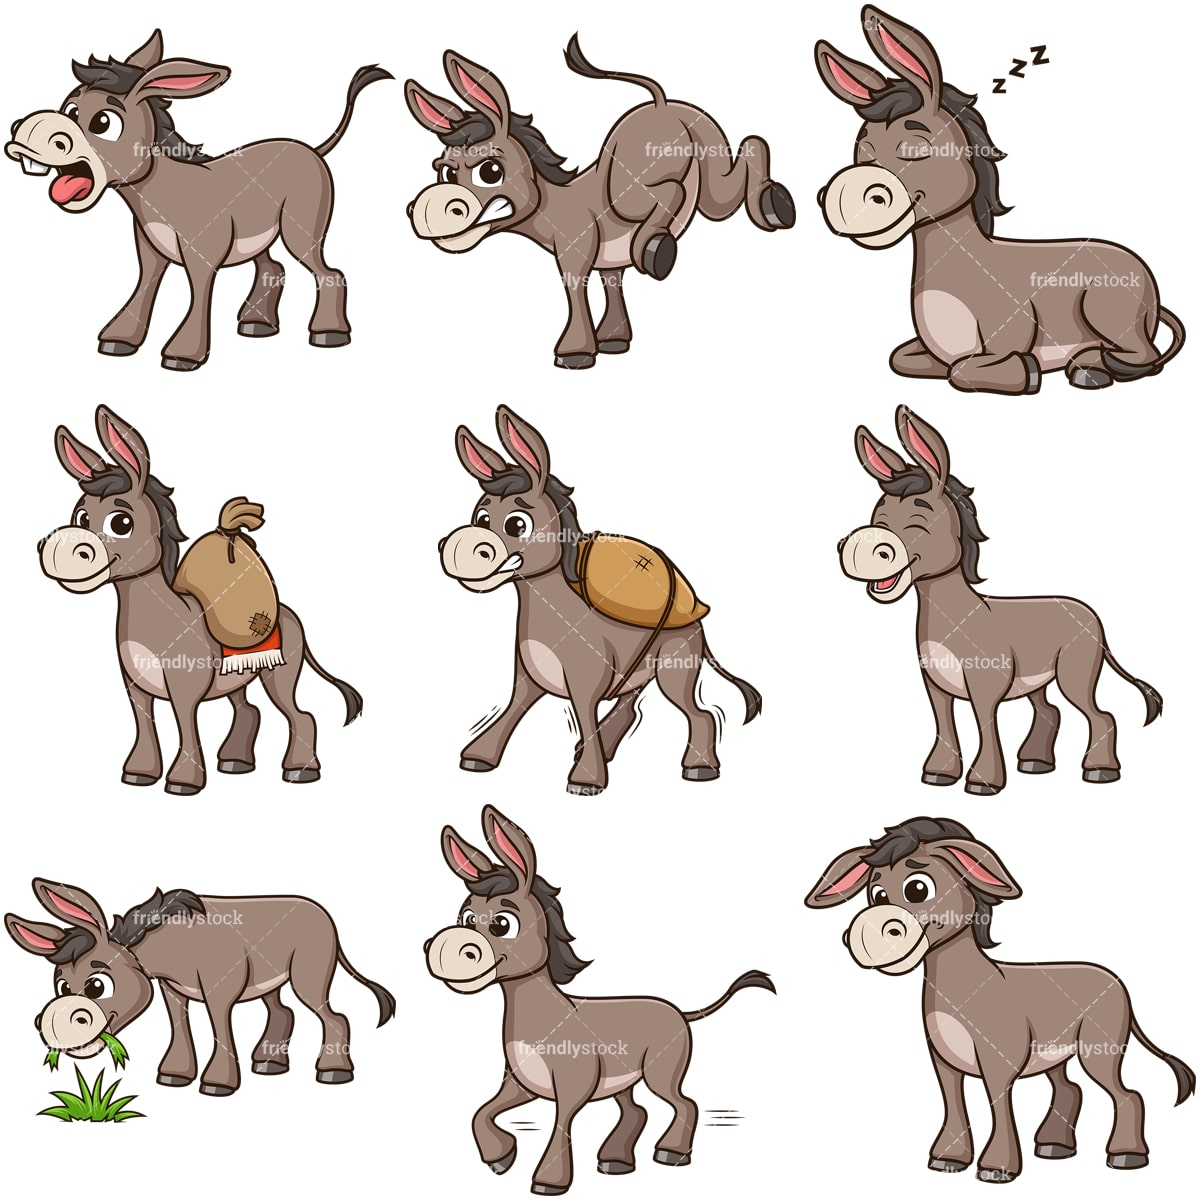 Clip Art Donkey Clipart Image - Donkey Clip Art - 500x438 PNG Download -  PNGkit